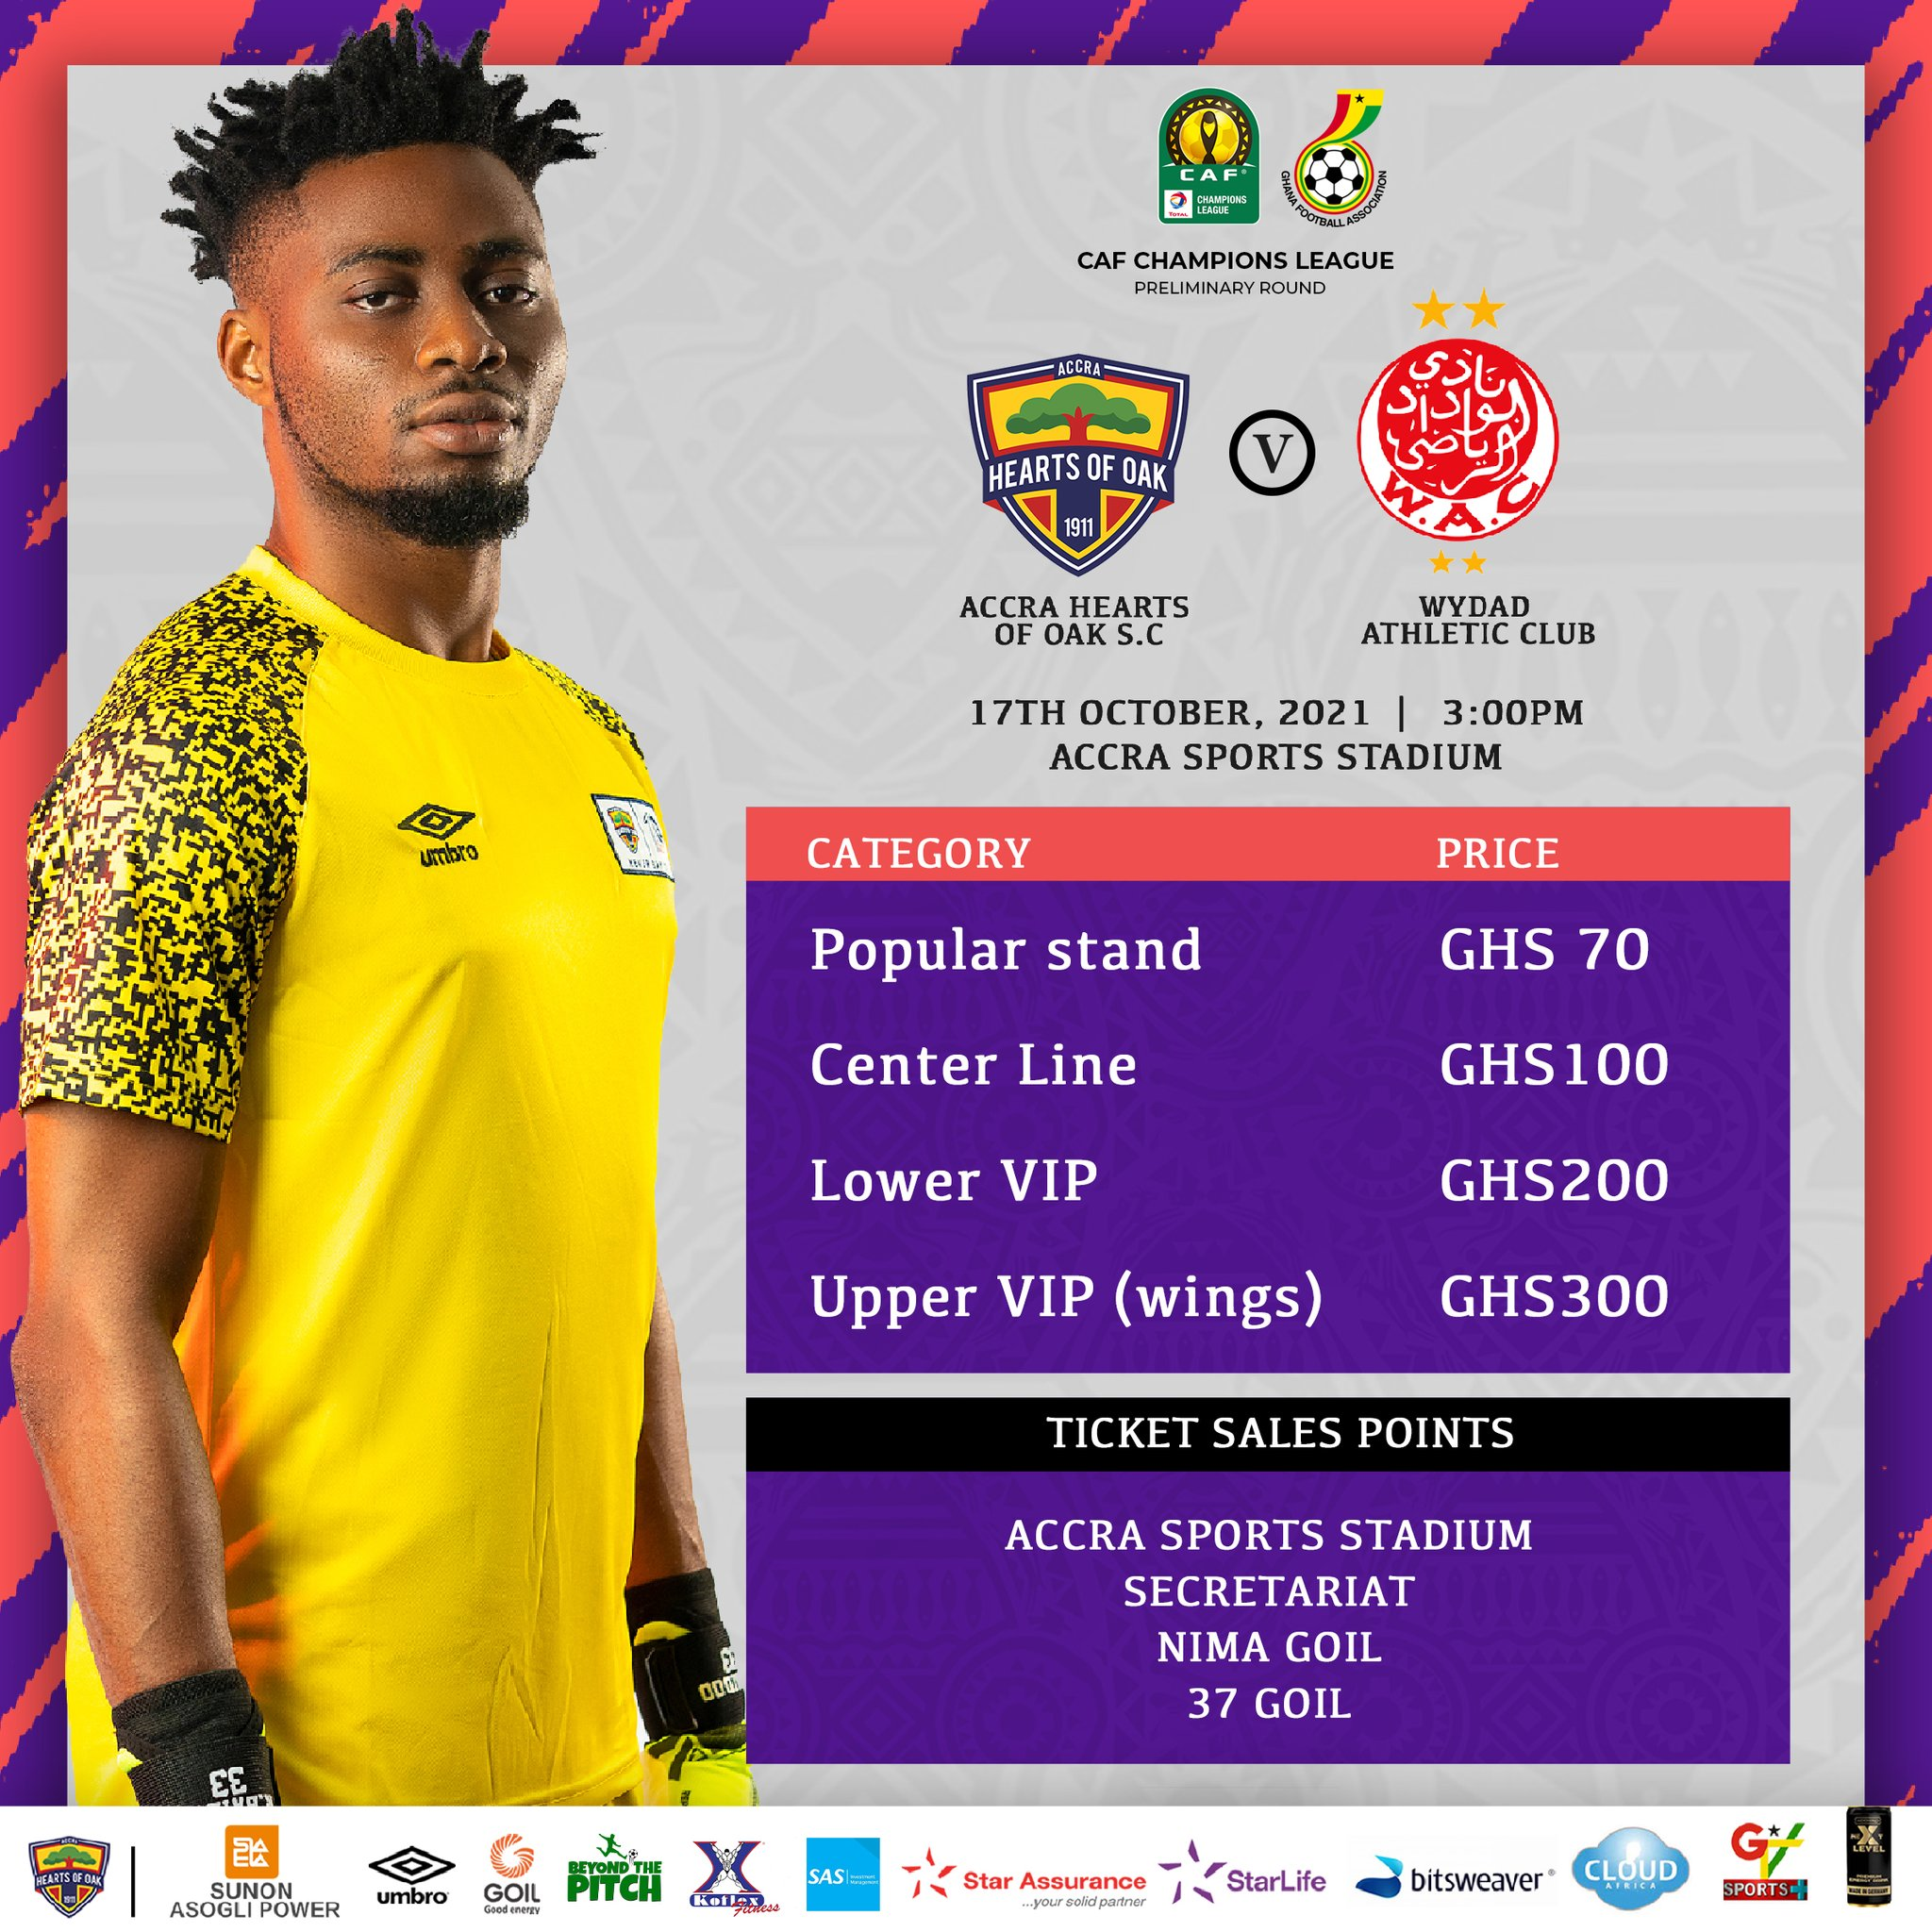 CAF Champions League: Hearts of Oak announce exorbitant ticket prices for Wydad clash